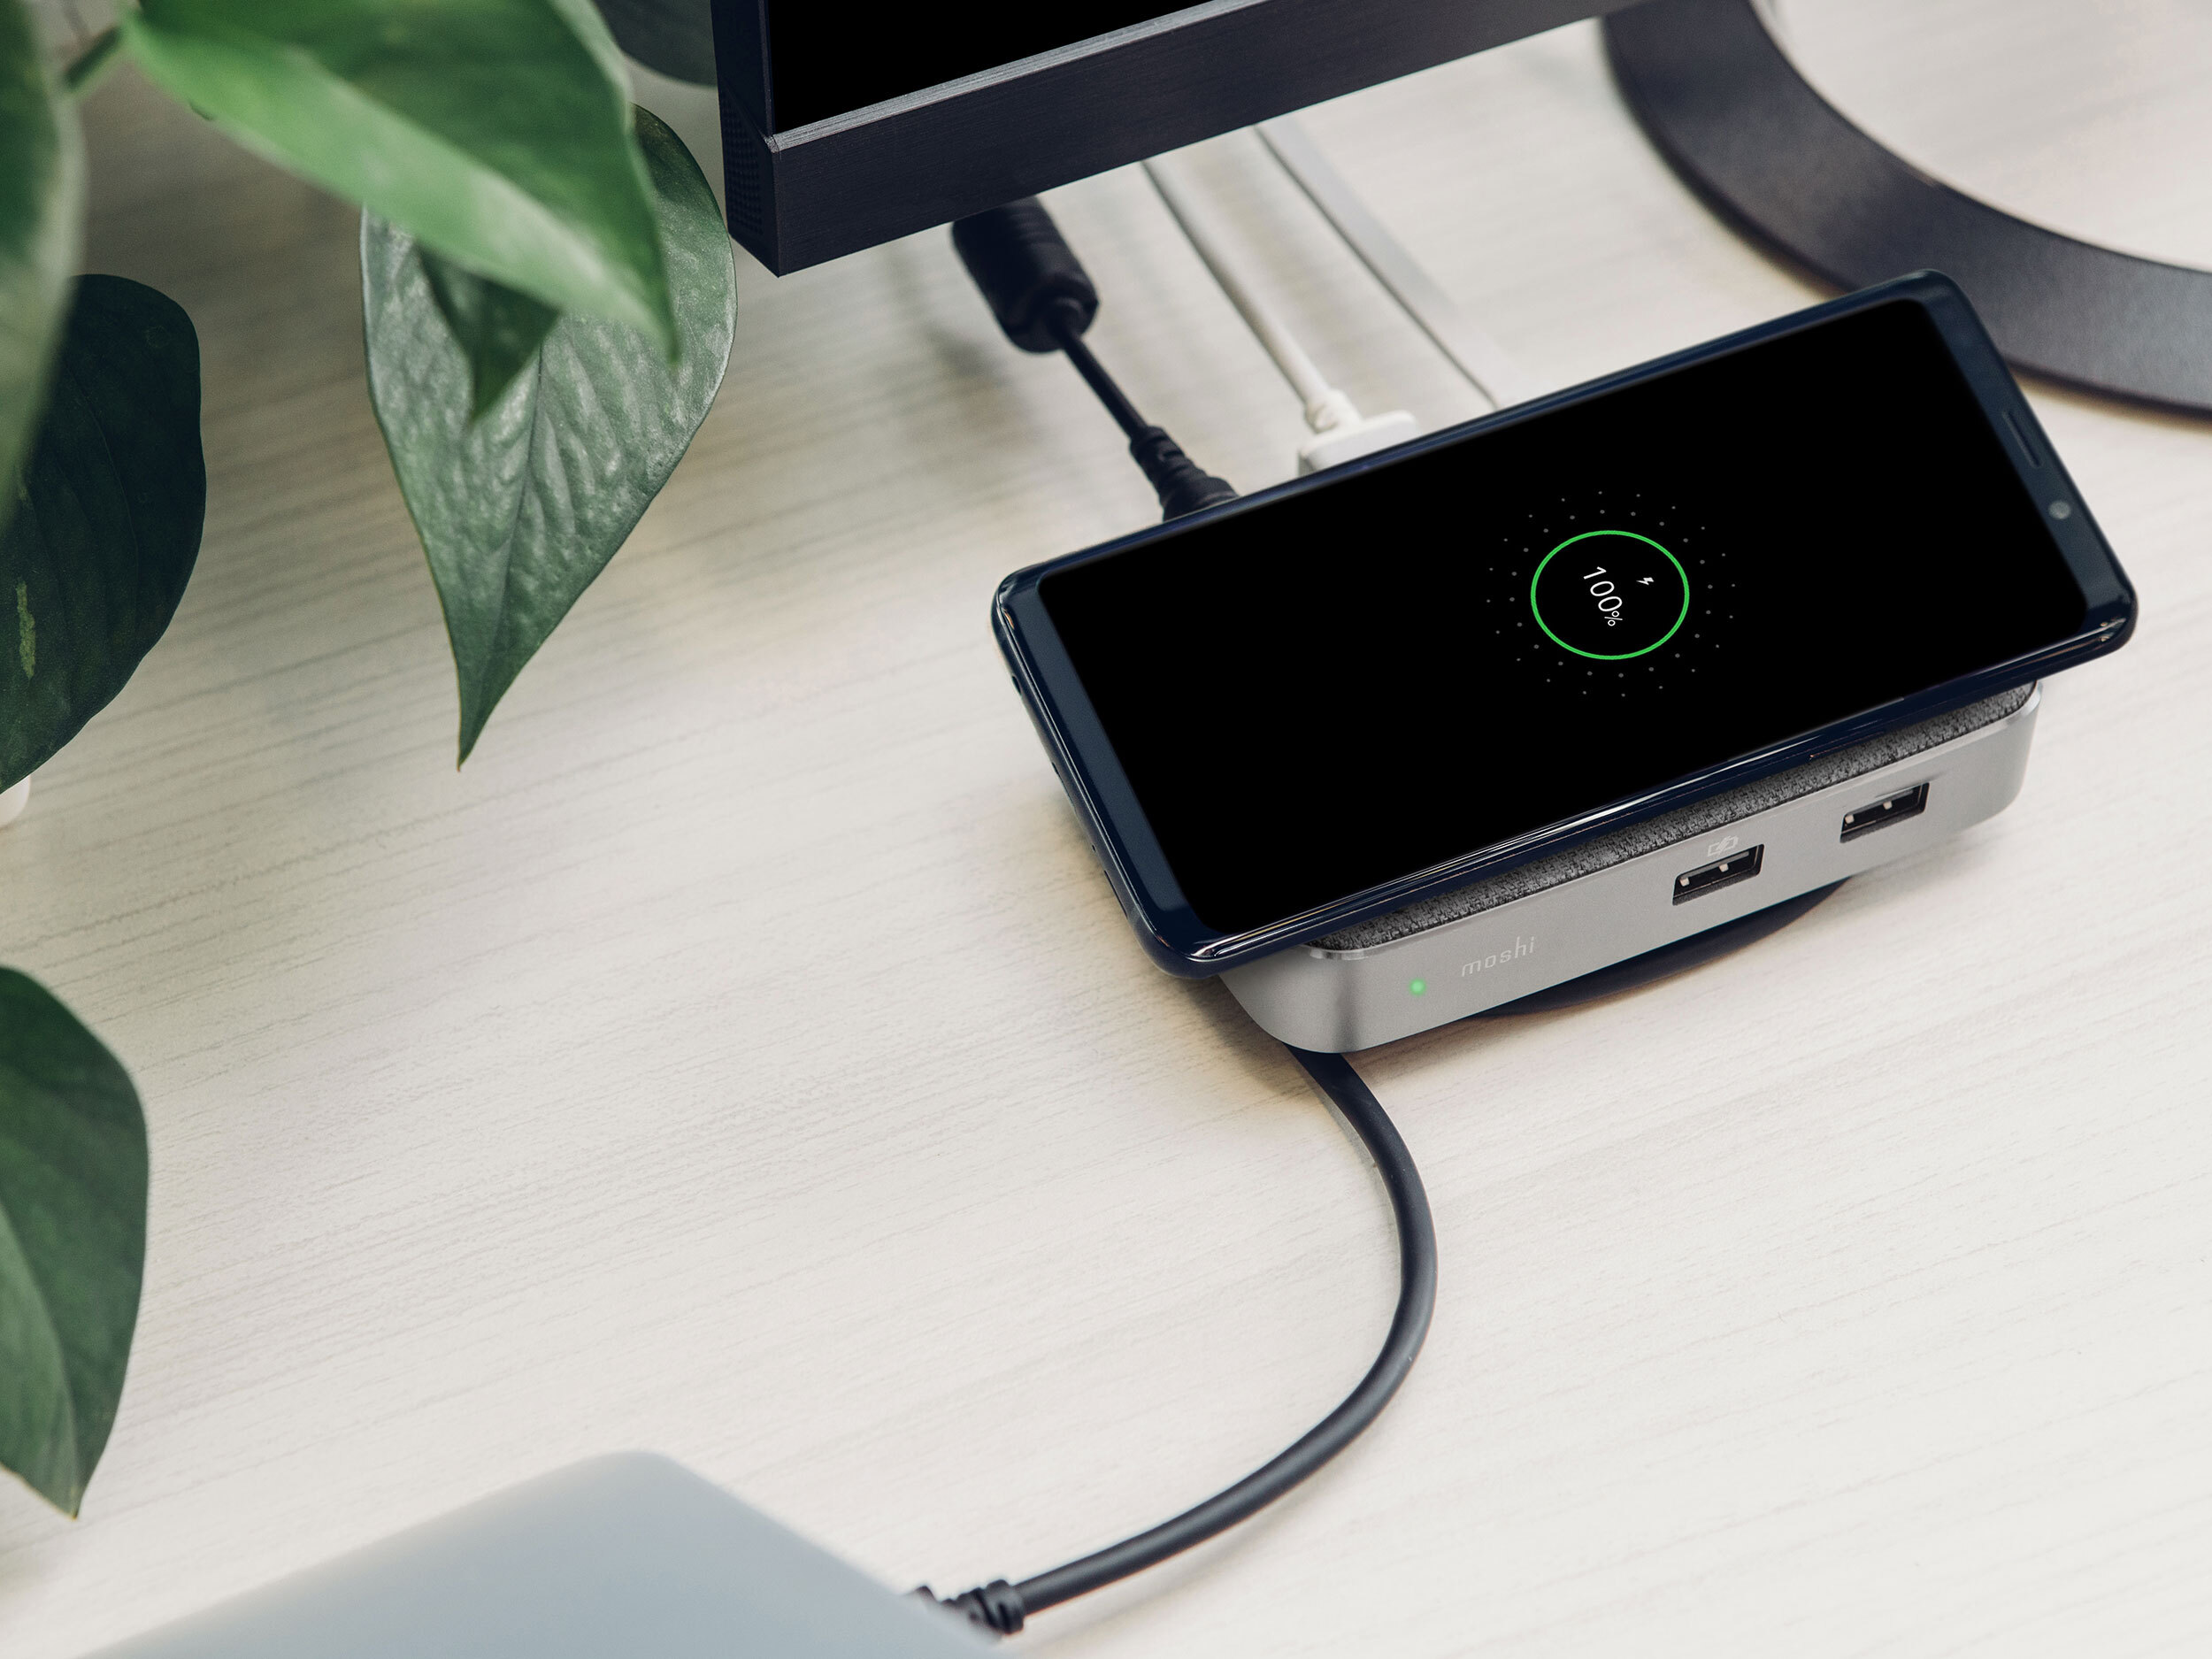 A smartphone charging wirelessly on top of a Moshi Symbus Q wireless charger on a desk